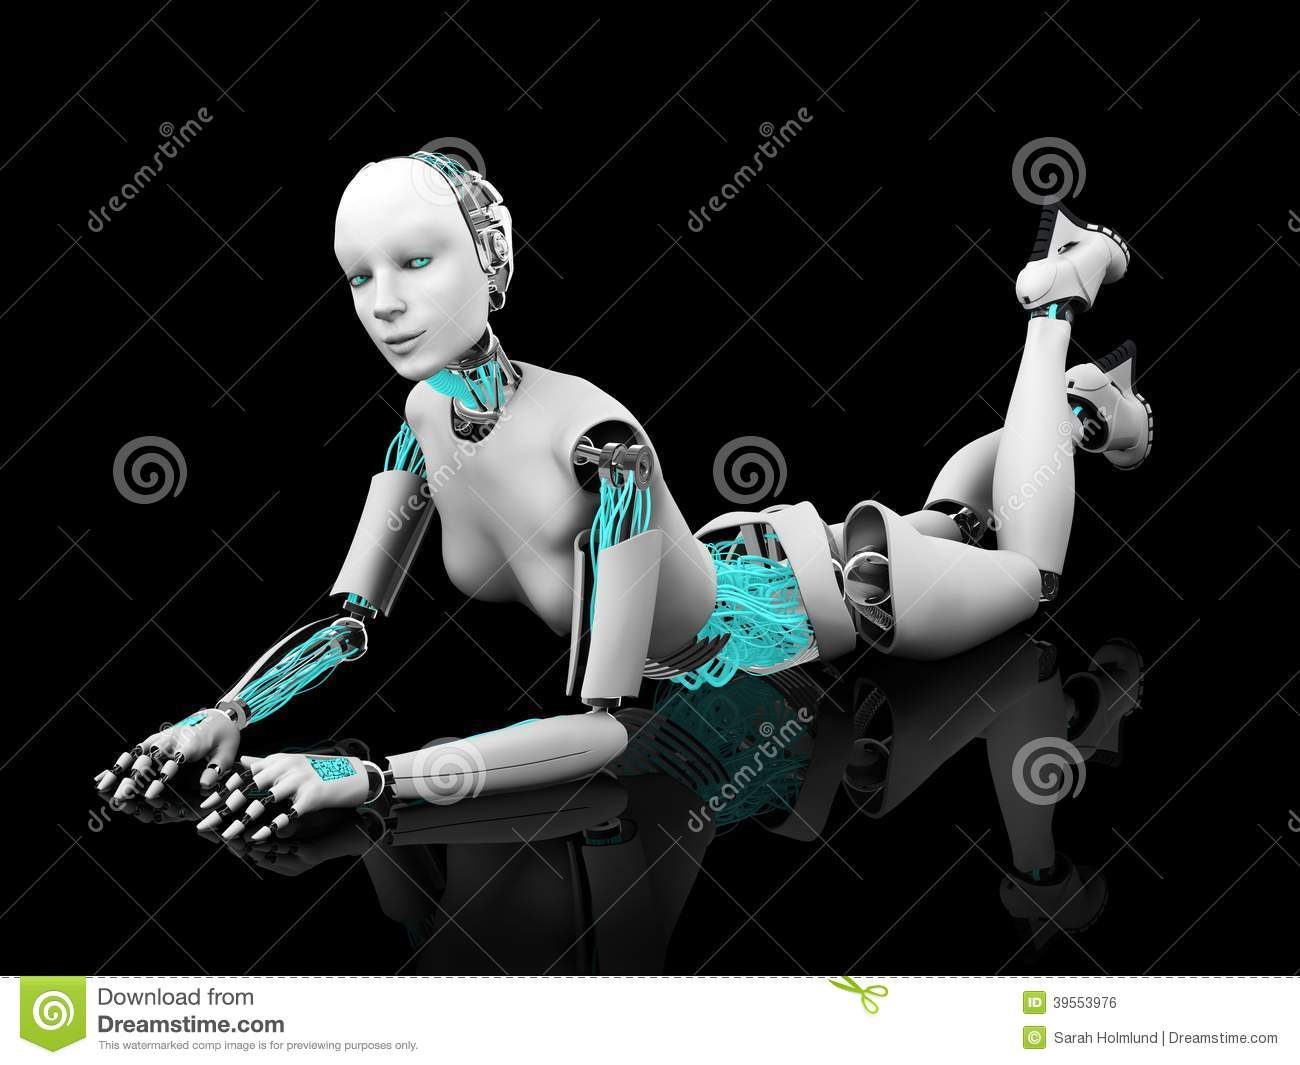 Erotic wallpaper for the robotic table